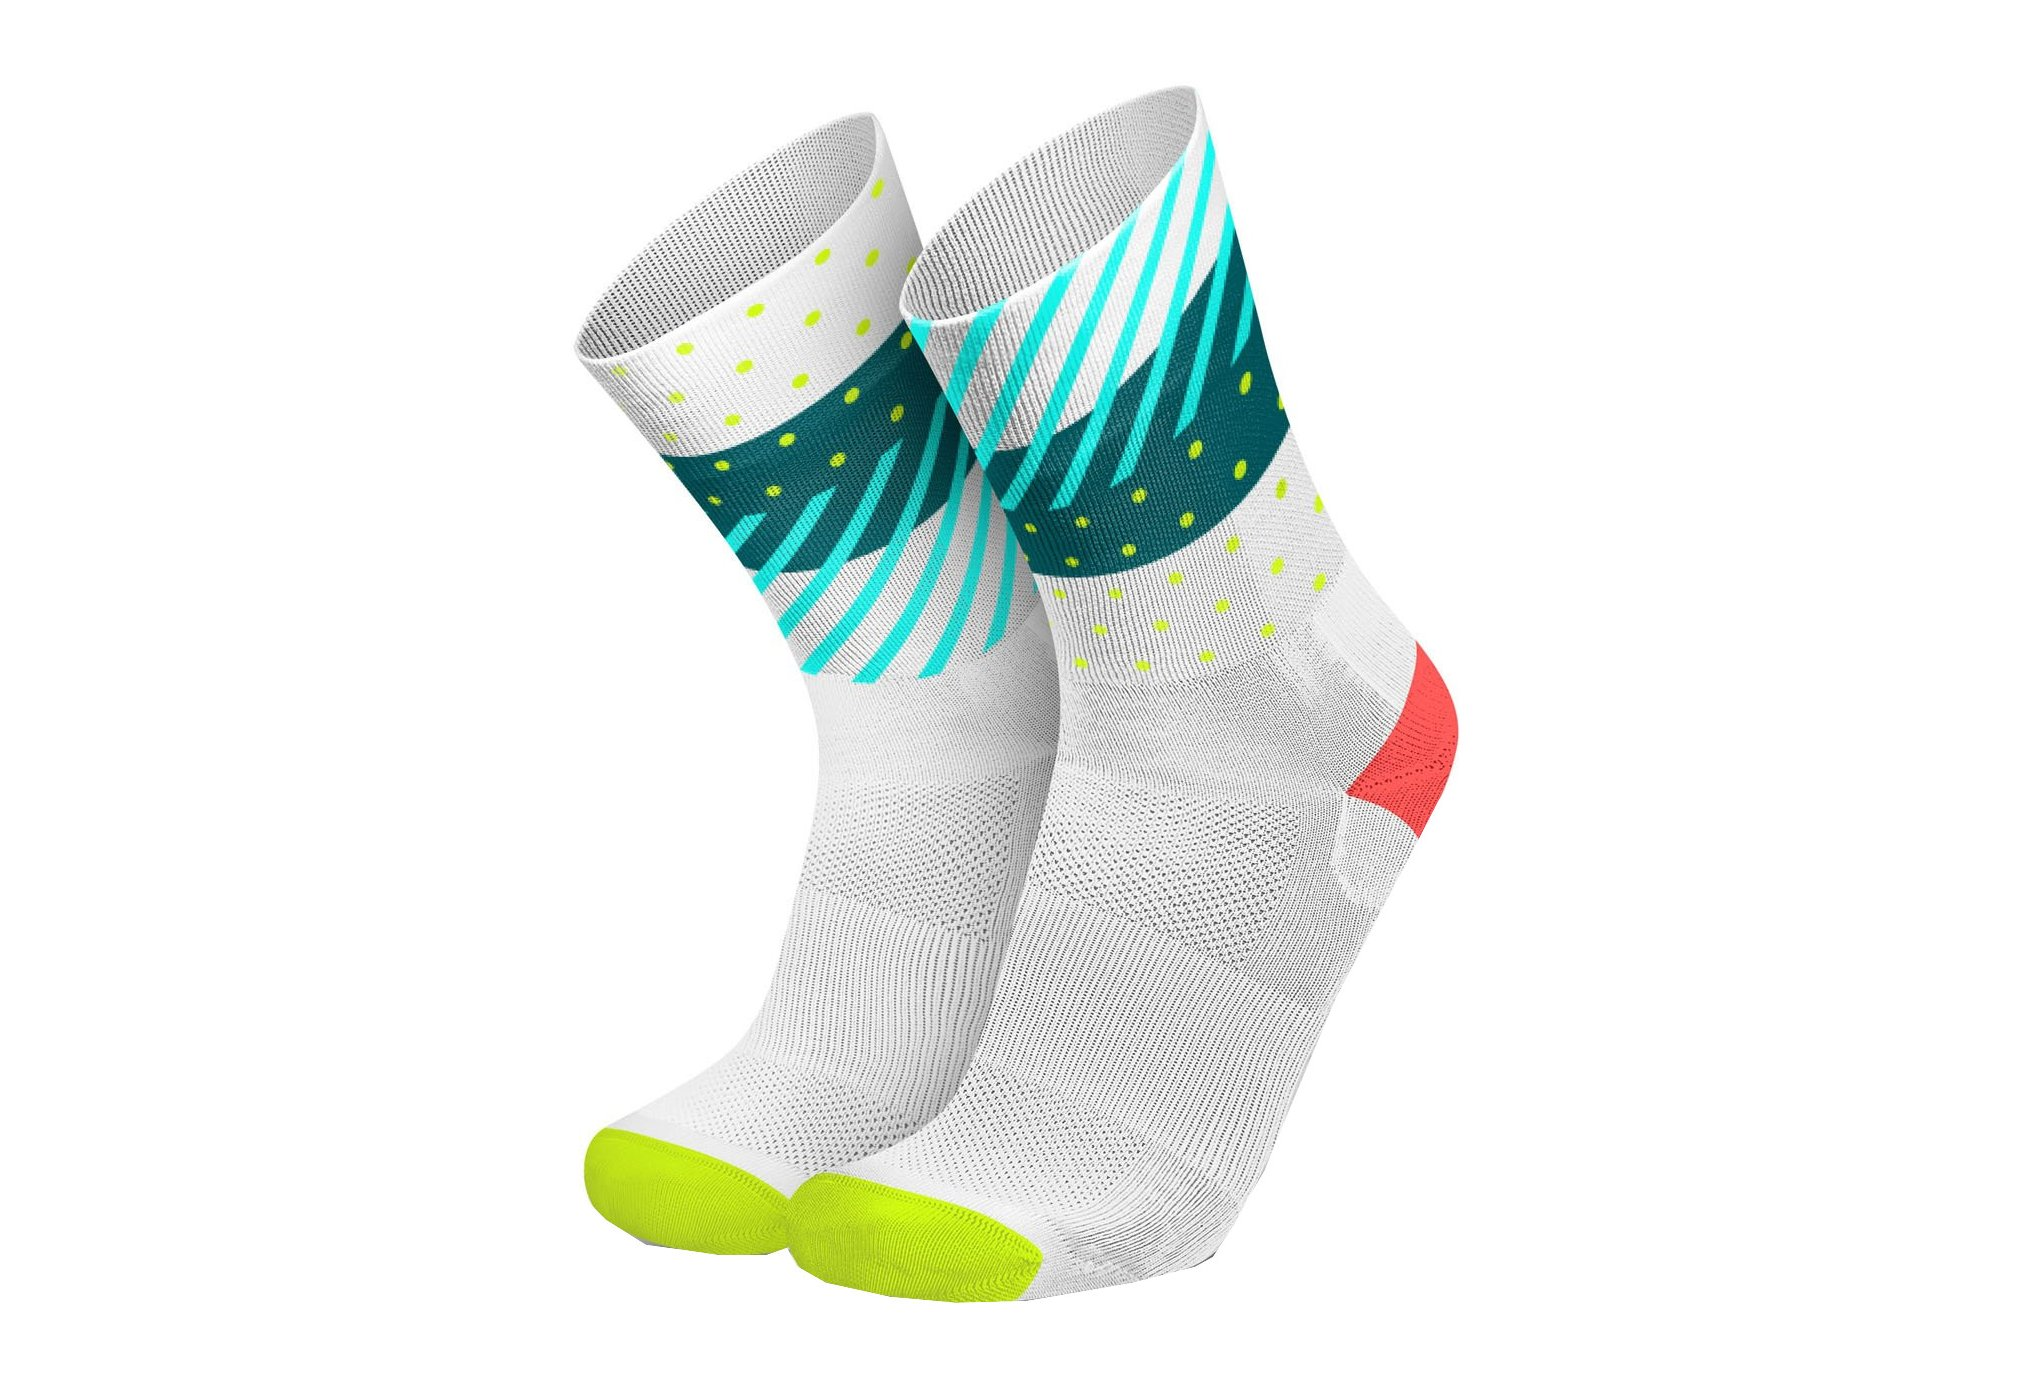 INCYLENCE Wildness Chaussettes